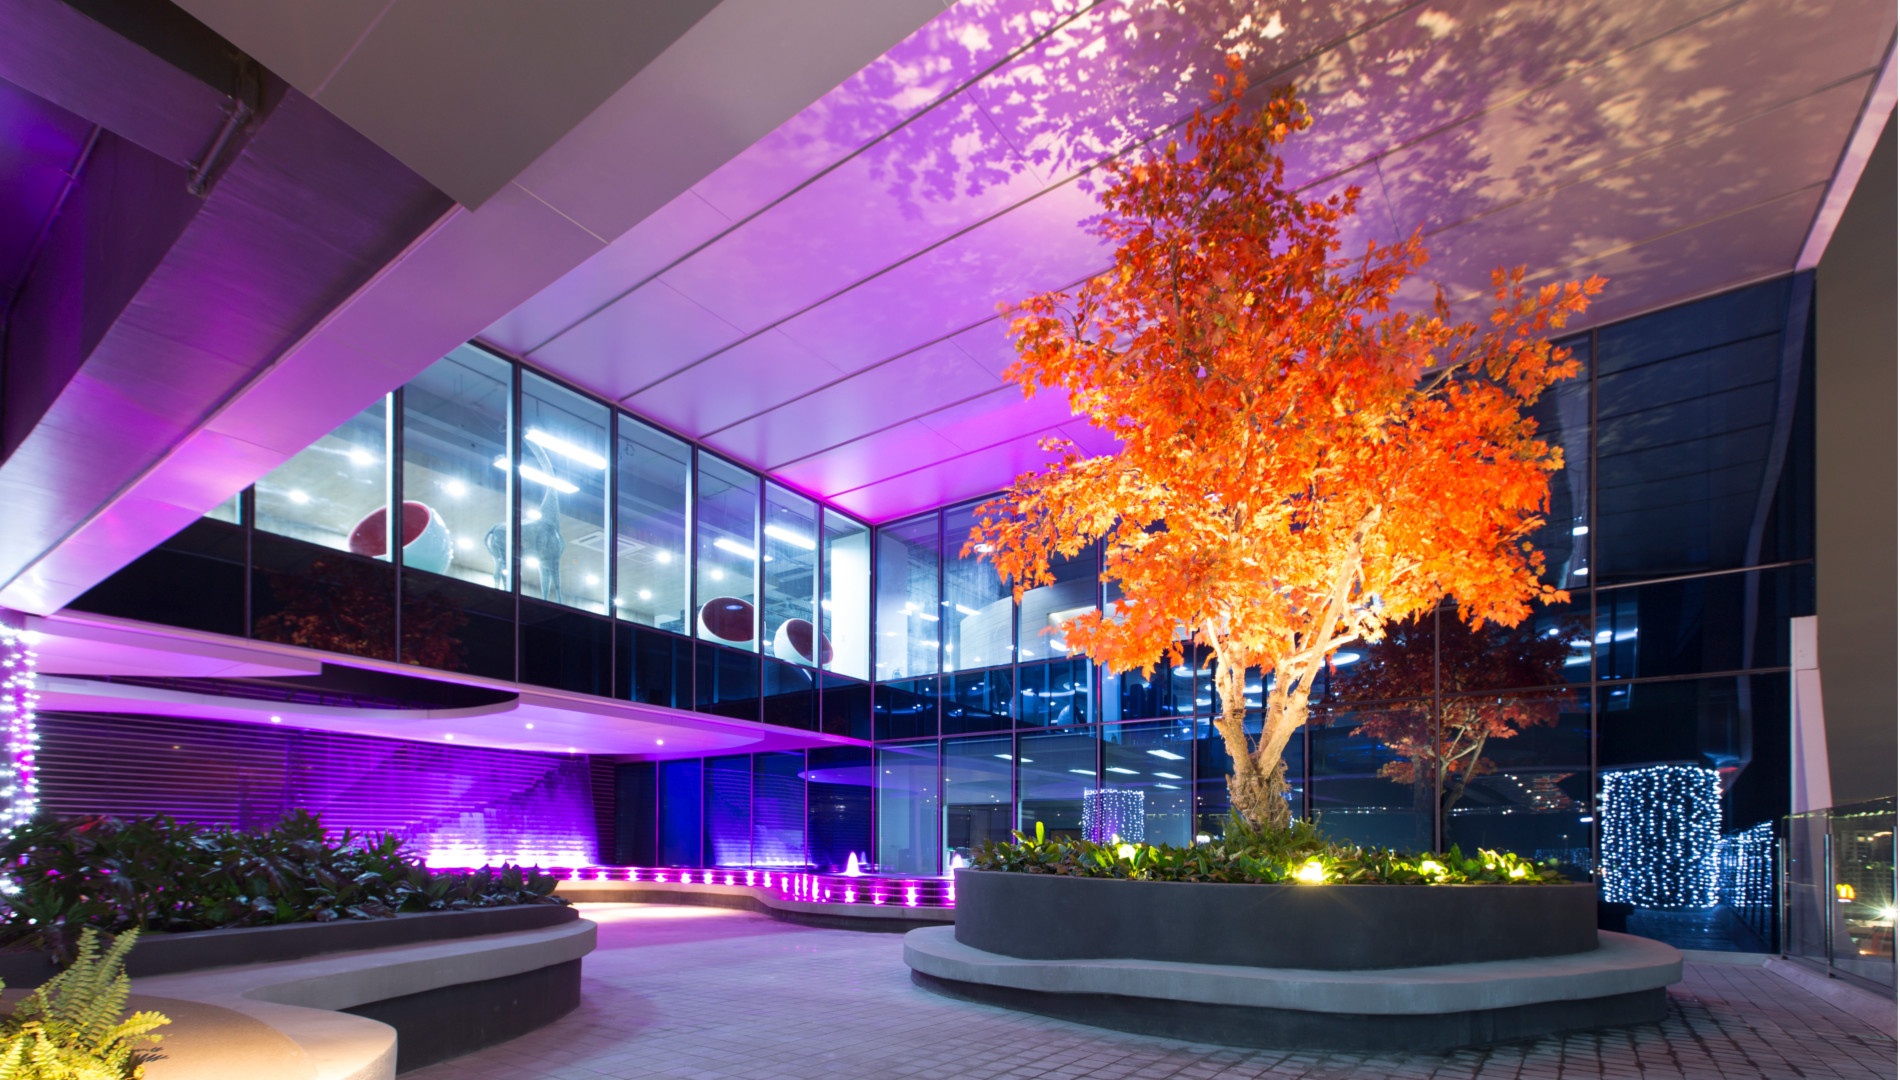 ASYA Design and Build Projects - SCAPE, ORANGE TREE